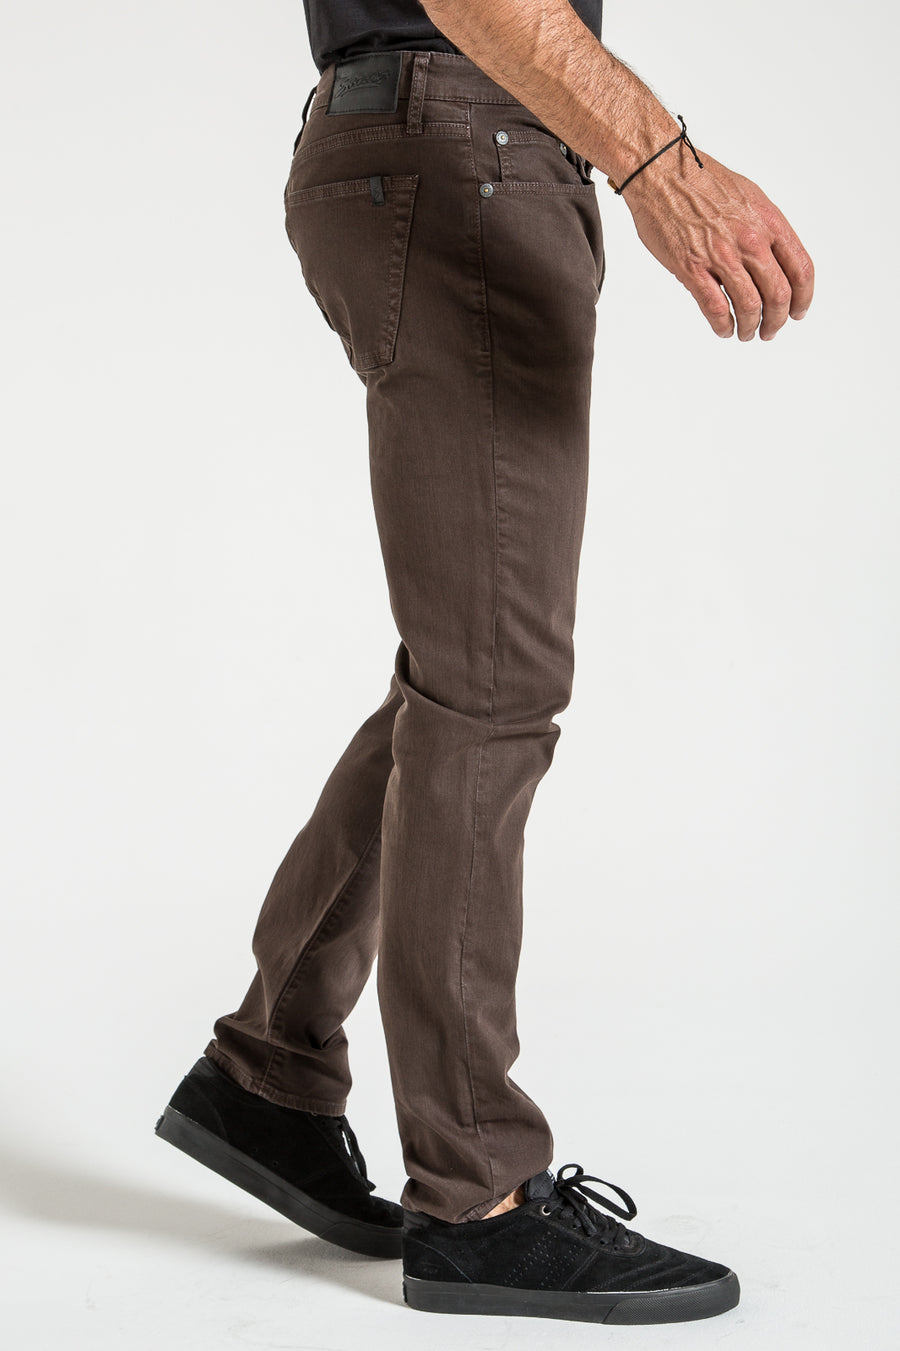 RIGGINS IN DARK BROWN TWILL